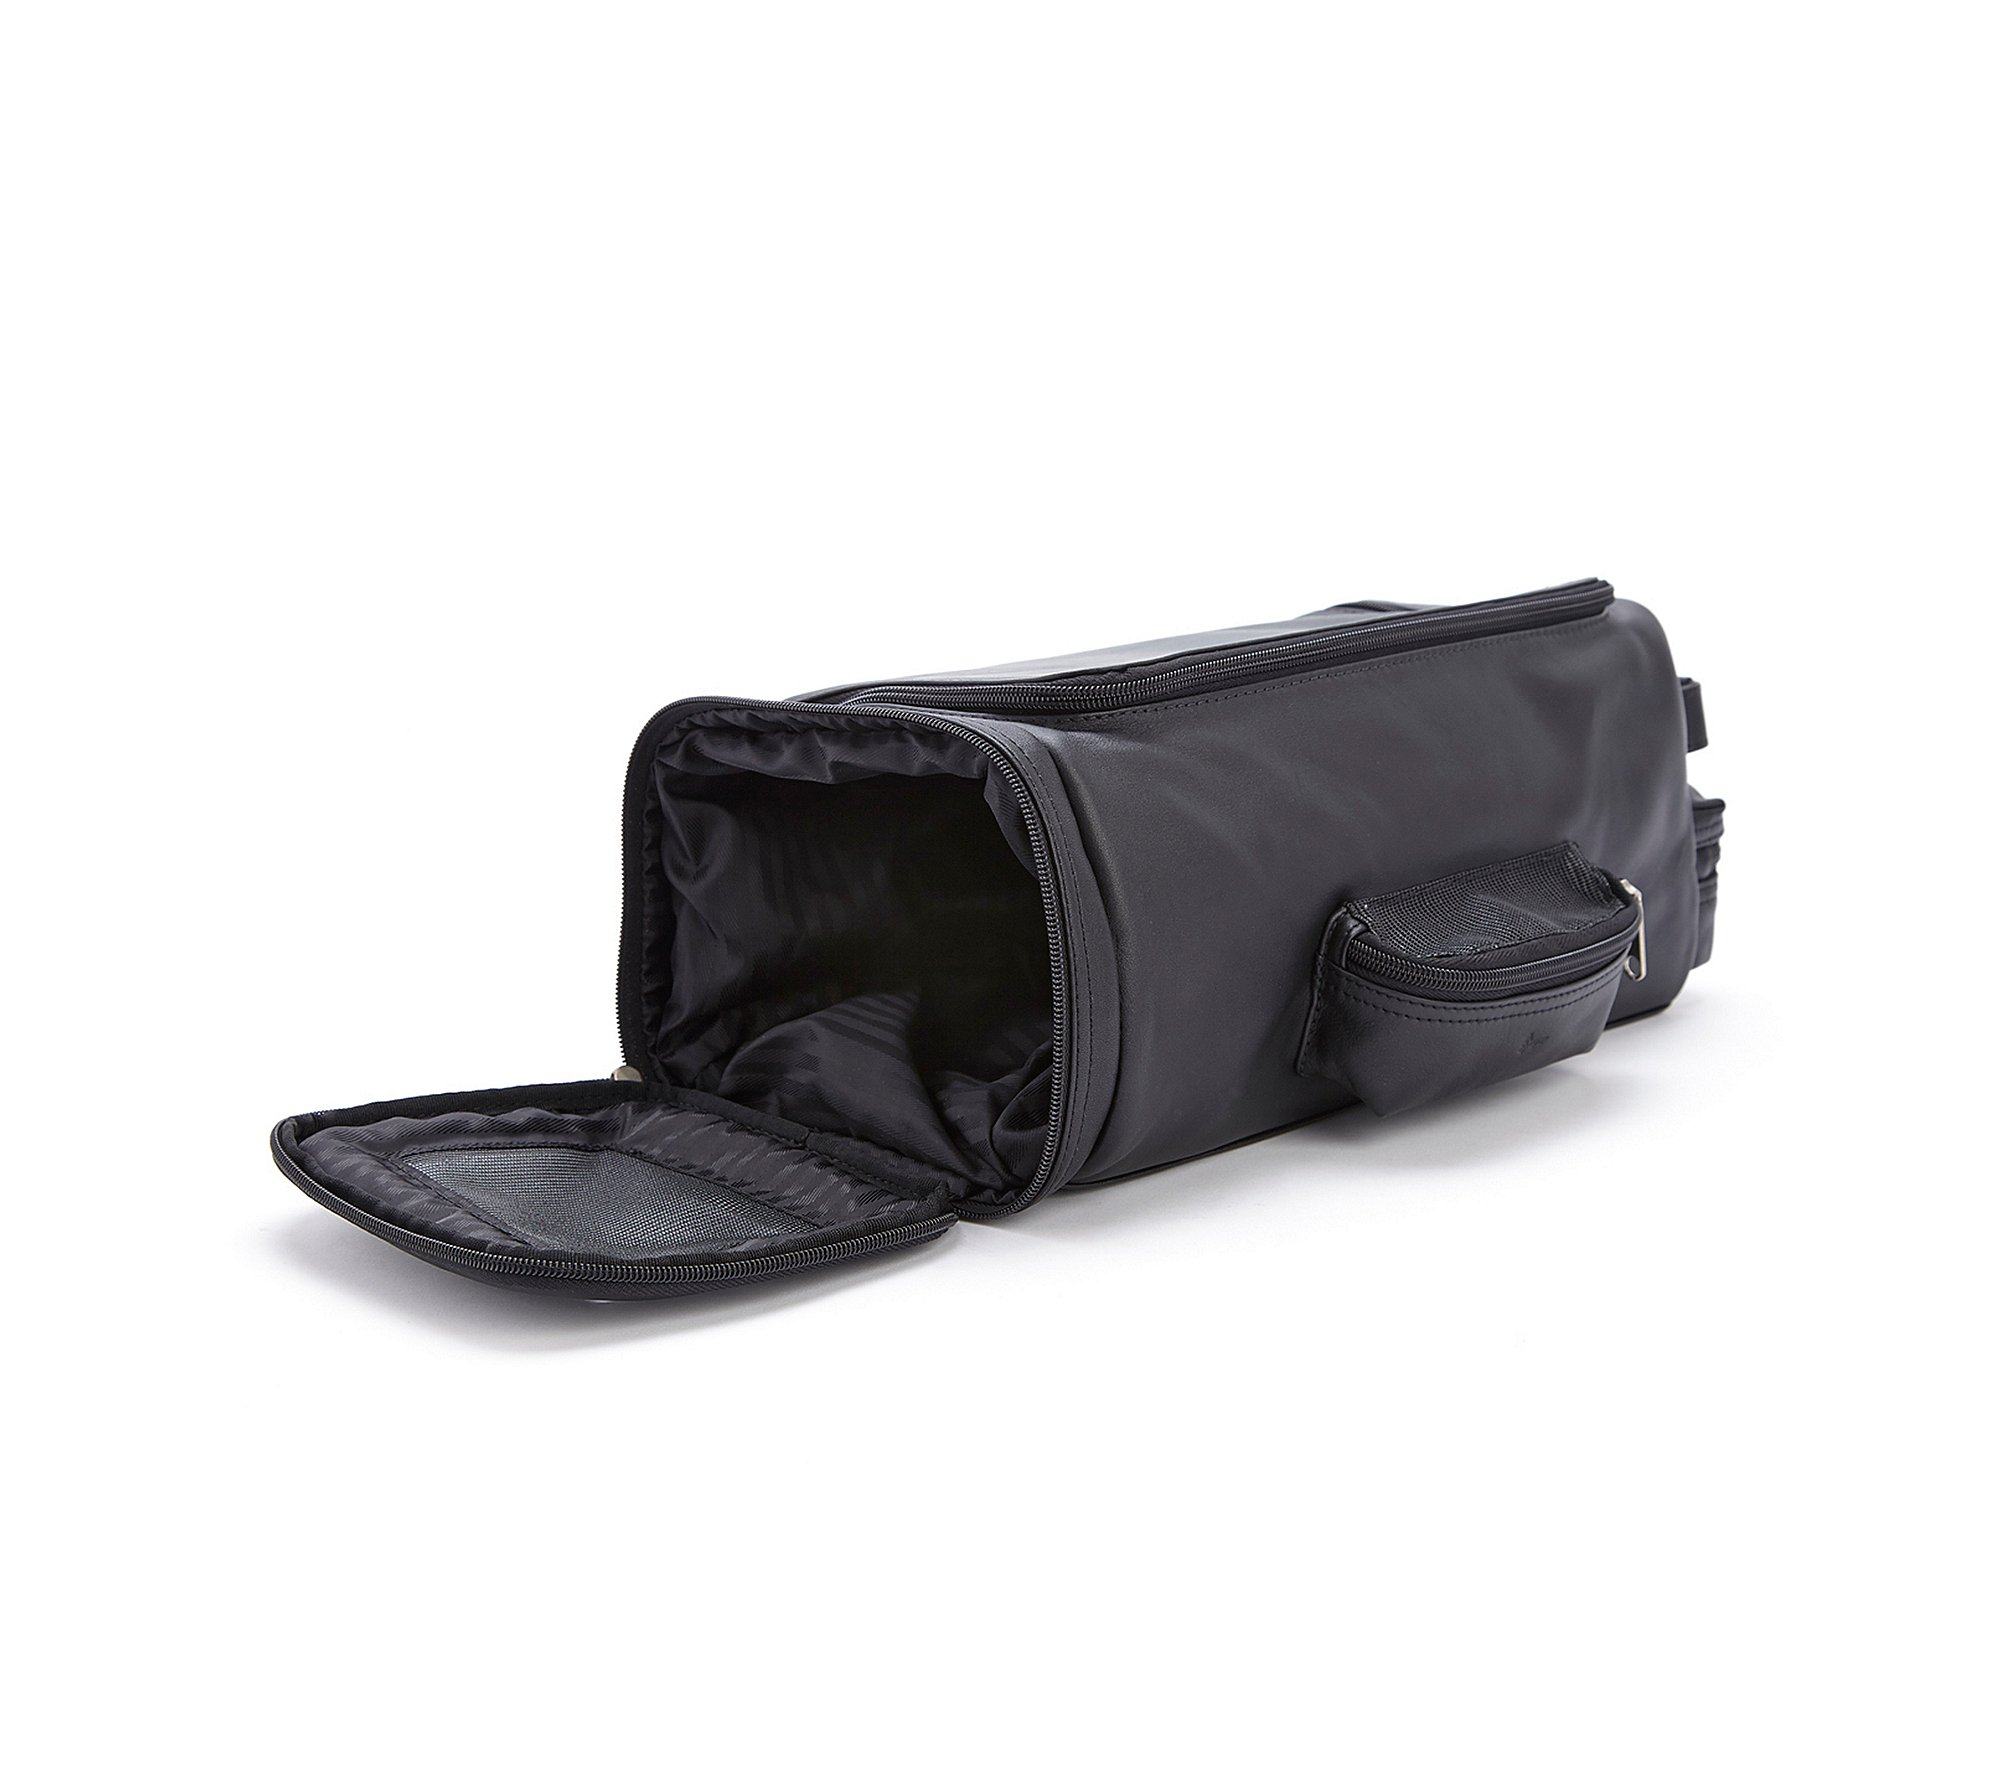 Royce Leather Luxury Travel Golf Shoe Bag Black by Royce Leather